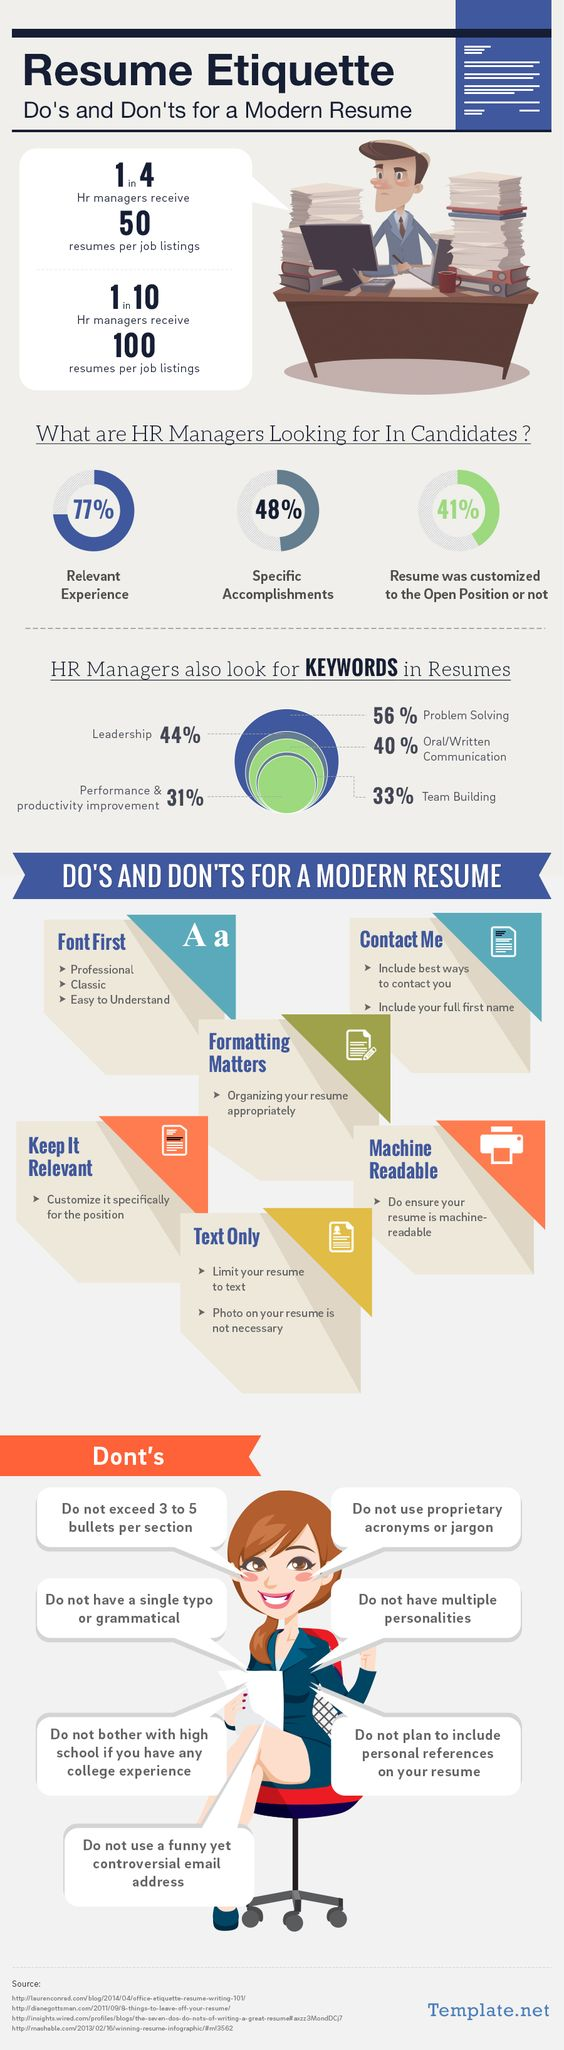 i help a lot of people their resumes lots of people are uxdjobs connecting ui ux professionals opportunities ui ux related jobs in world s no 1 user experience designer developer job site